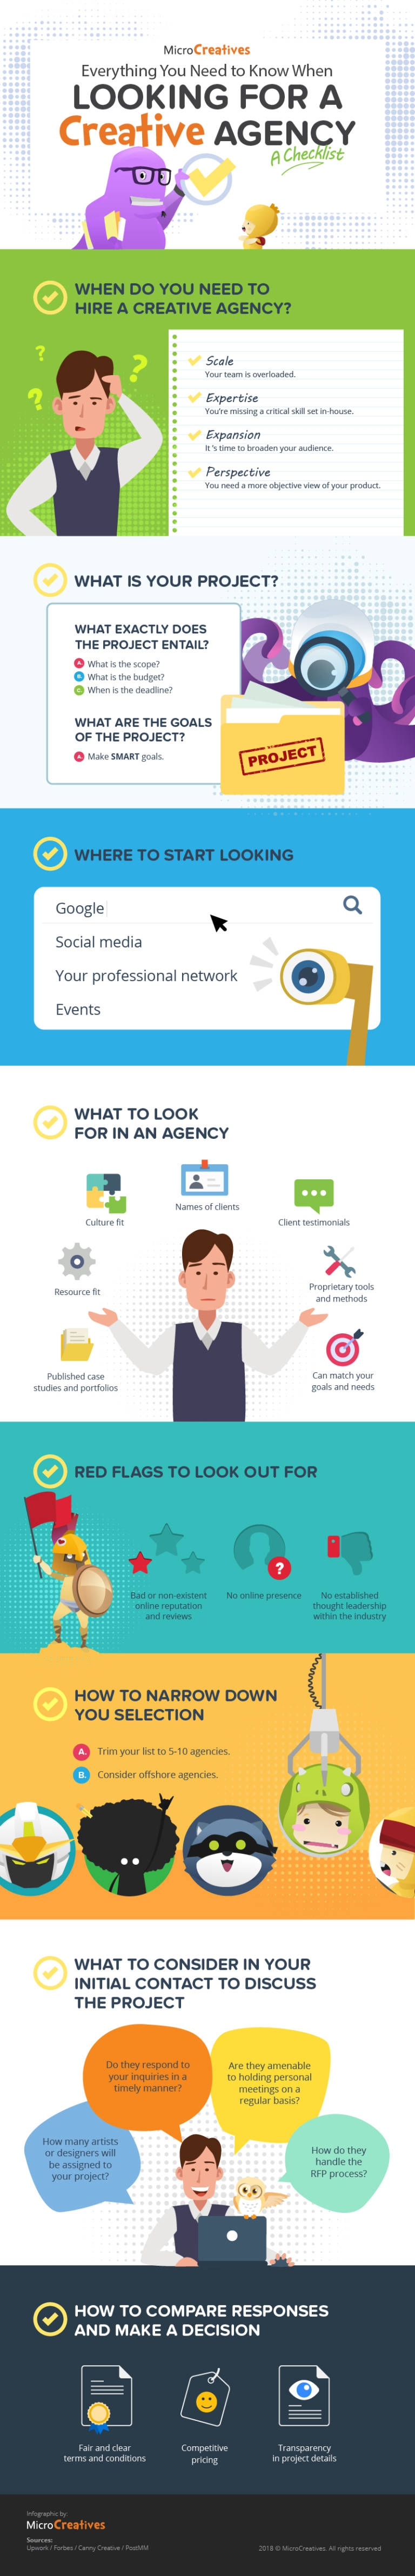 What to Look for in a Creative Agency [Infographic]